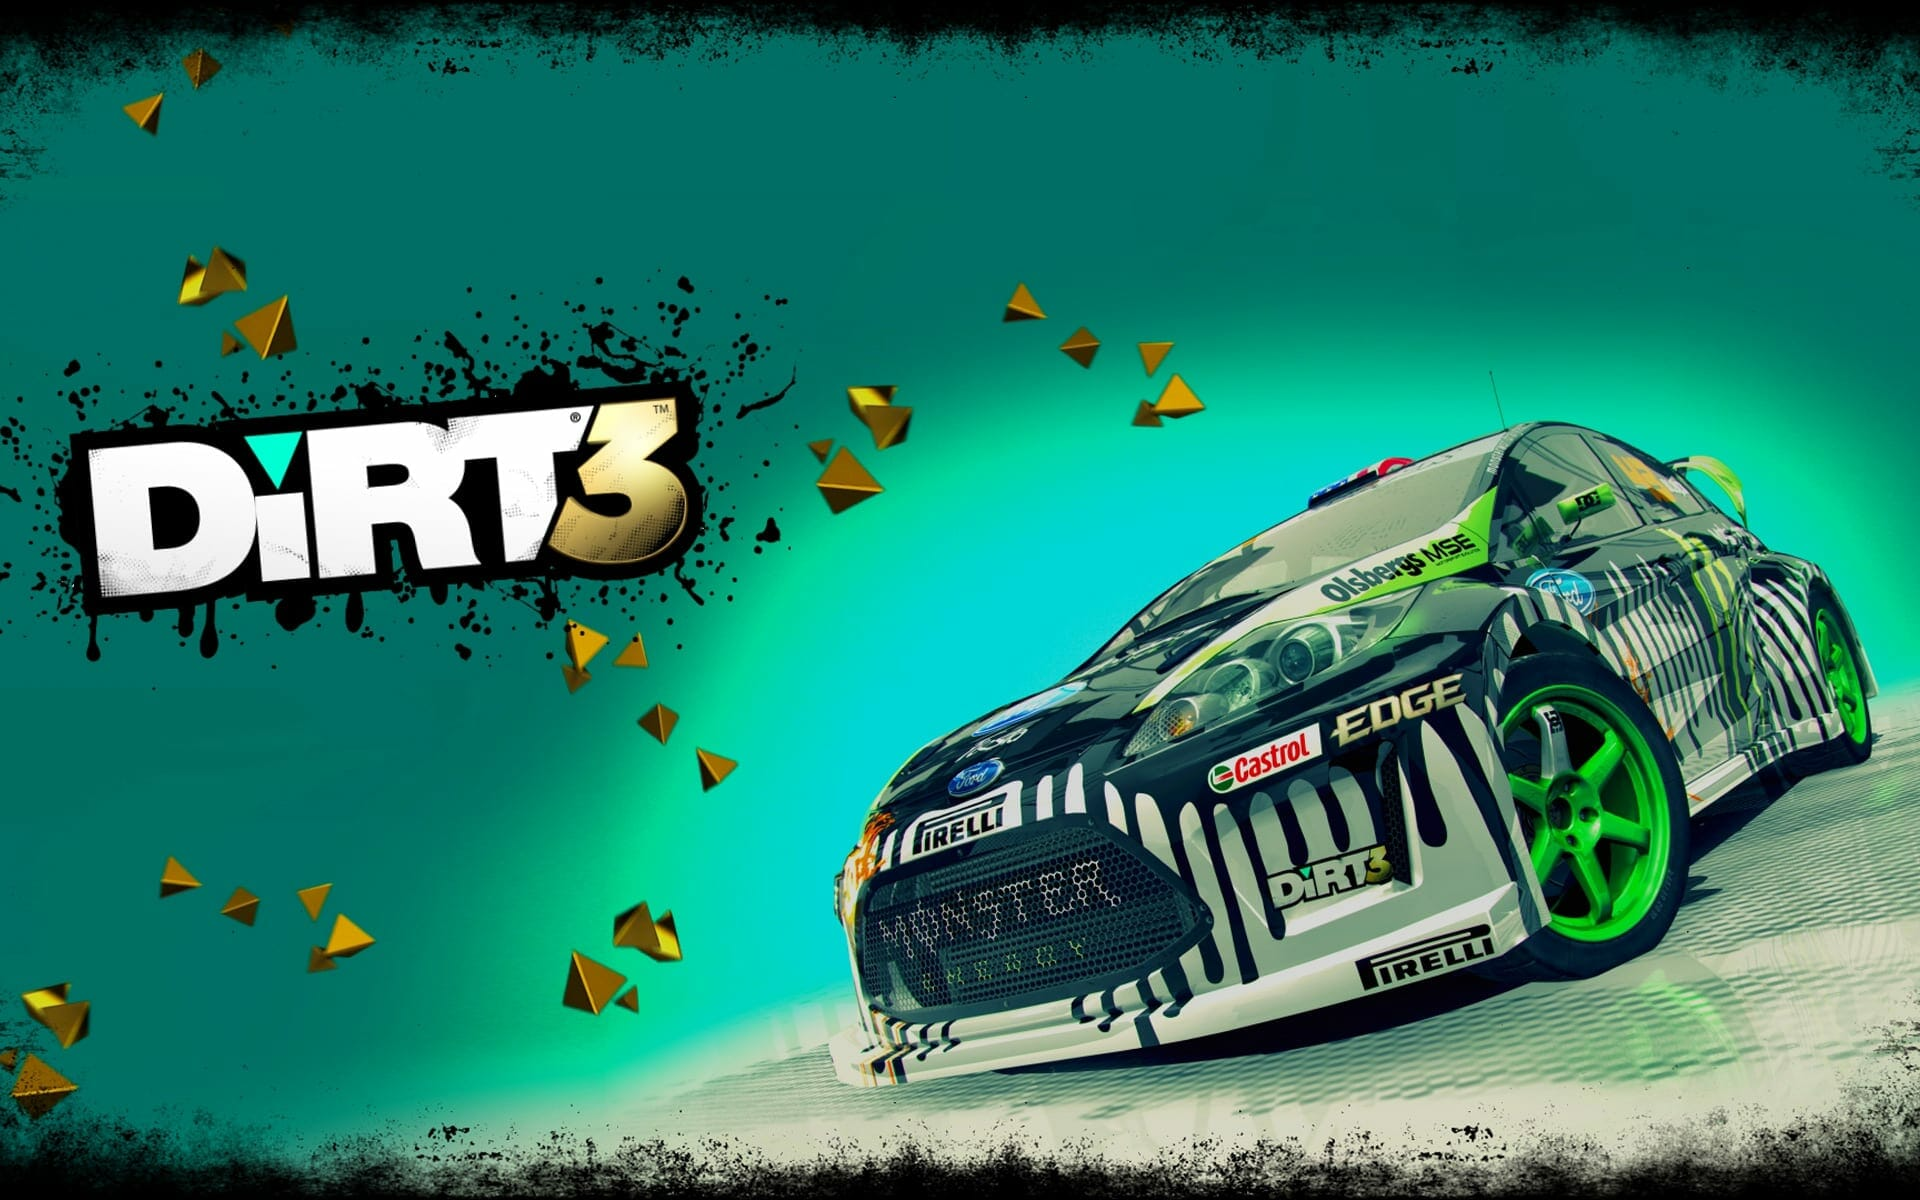 download dirt 3 complete edition free on pc for a limited. Black Bedroom Furniture Sets. Home Design Ideas